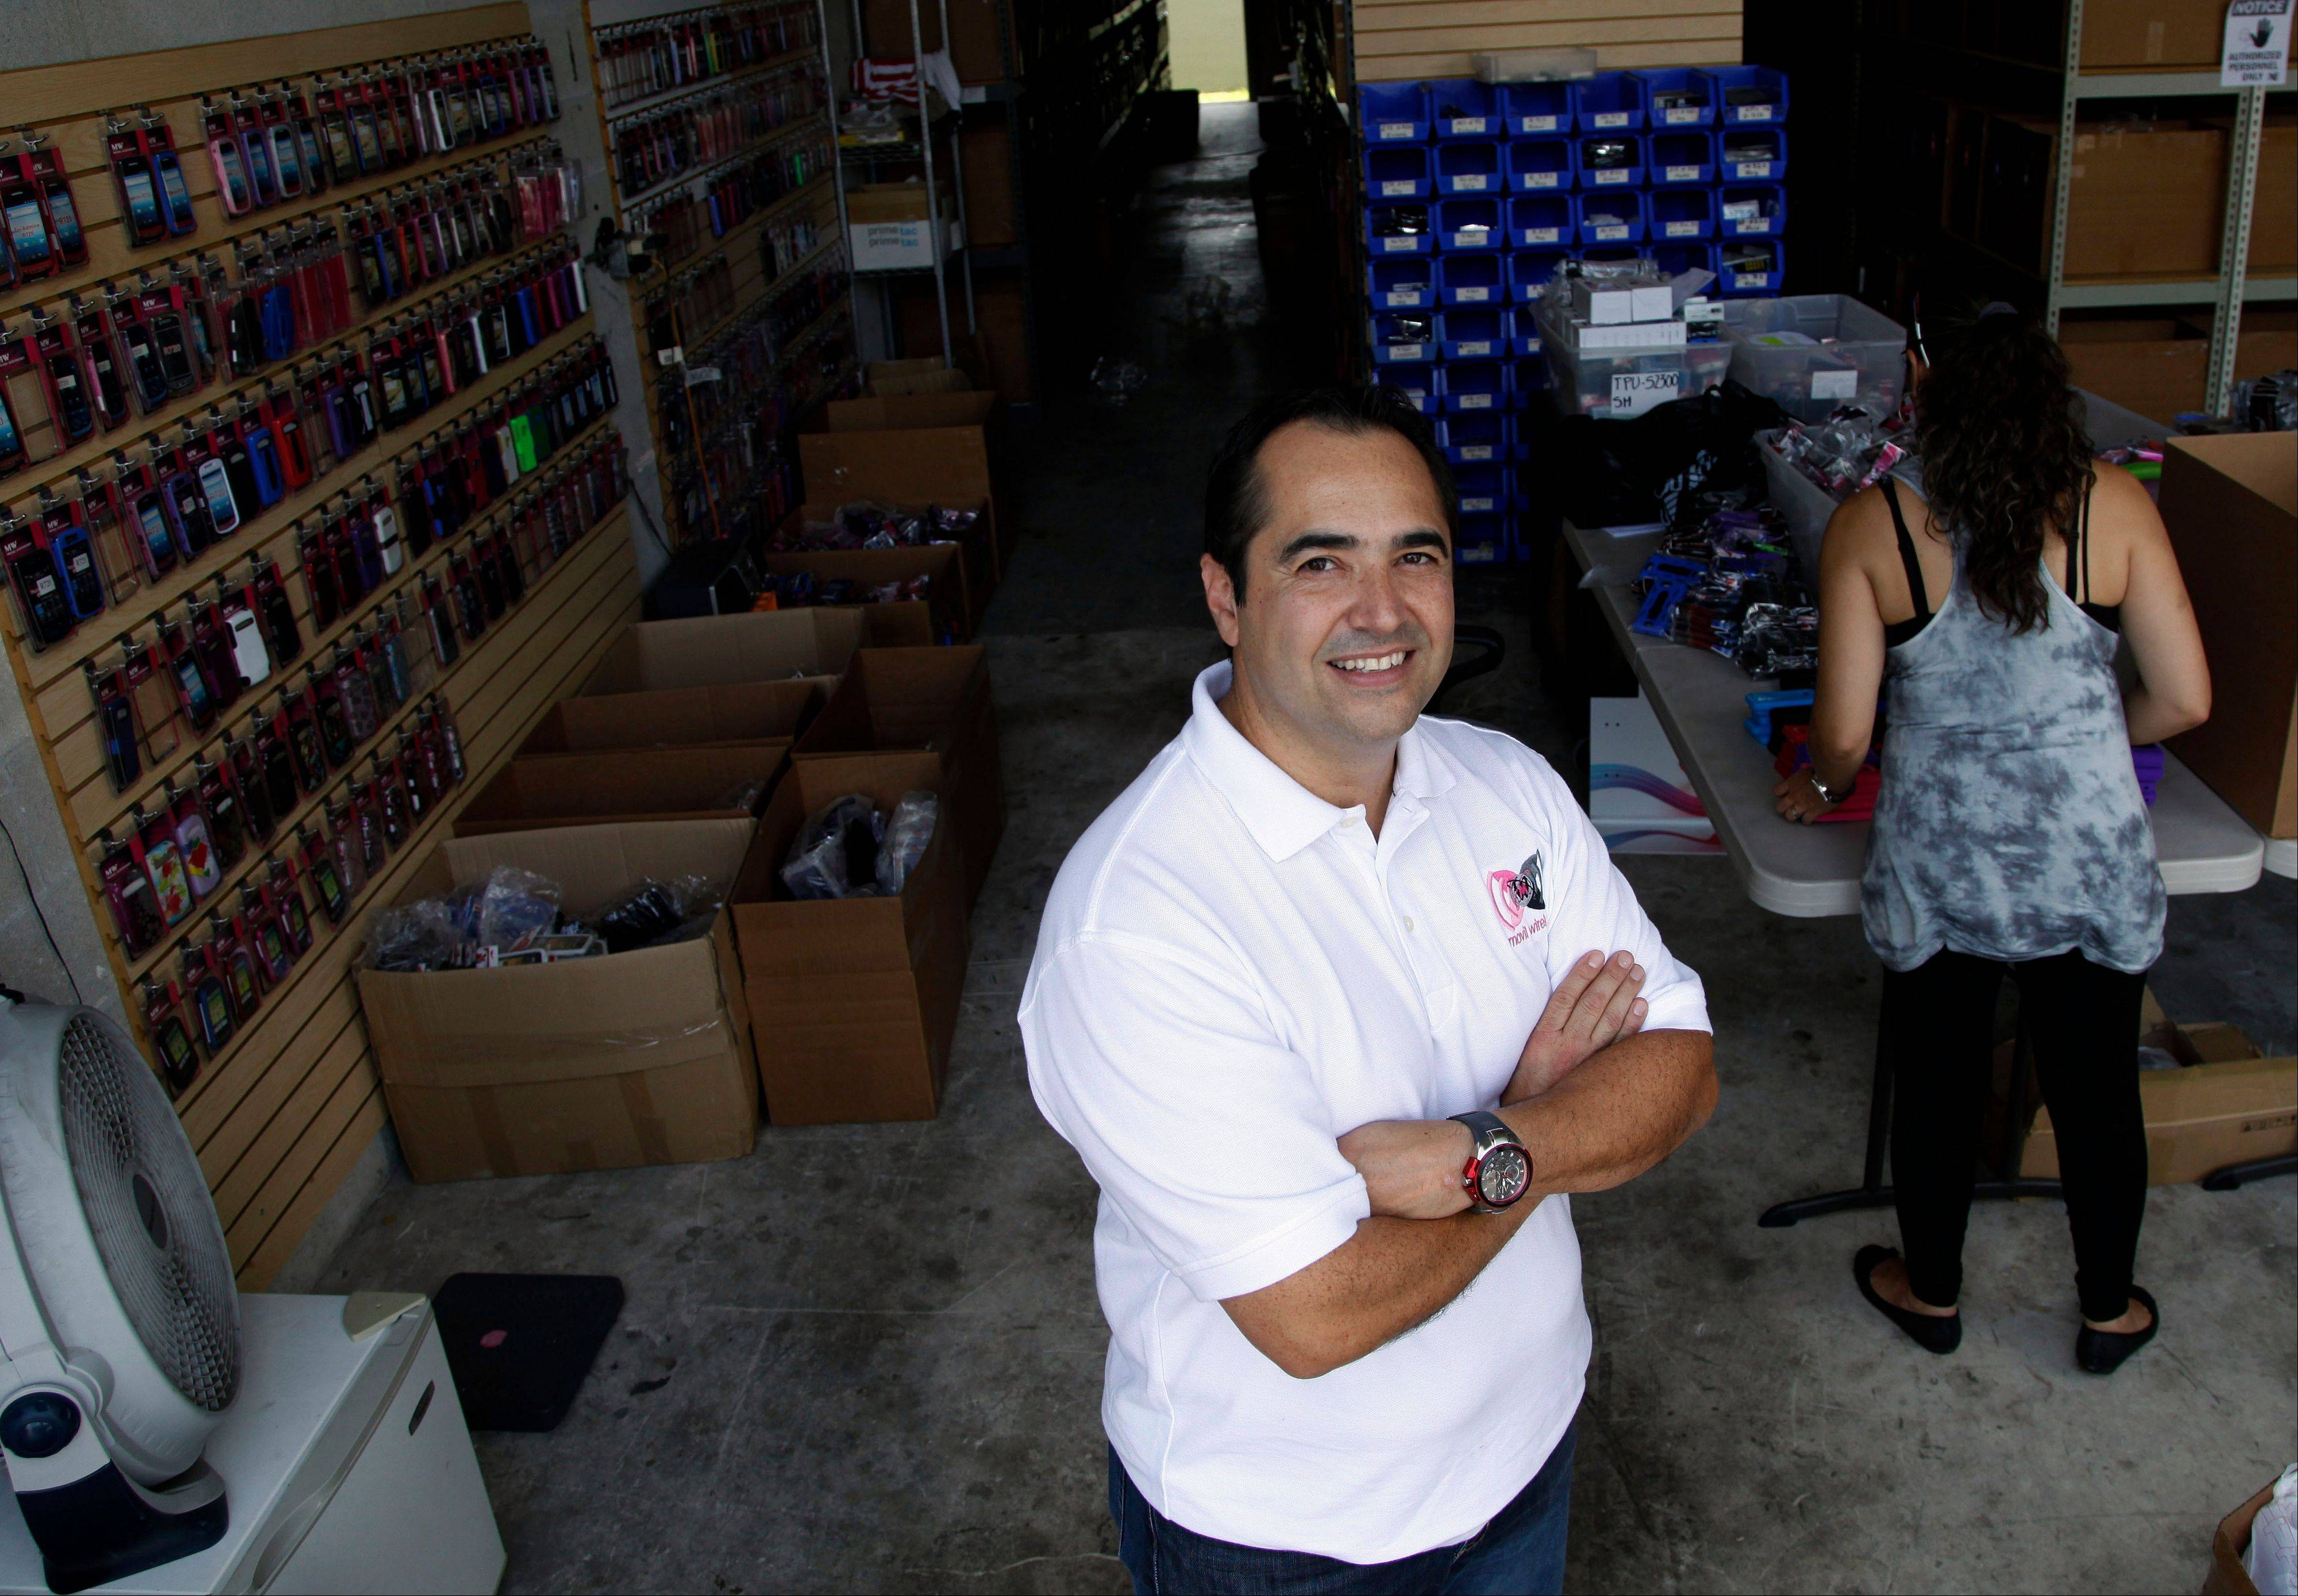 John Giraldo, vice president of Movil Wireless, stands in his warehouse, in Doral, Fla. Through a friend, Giraldo and his wife heard about the OUR Microlending program. His wife received five loans for more than $9,000 to expand inventory and later to rent a larger office.